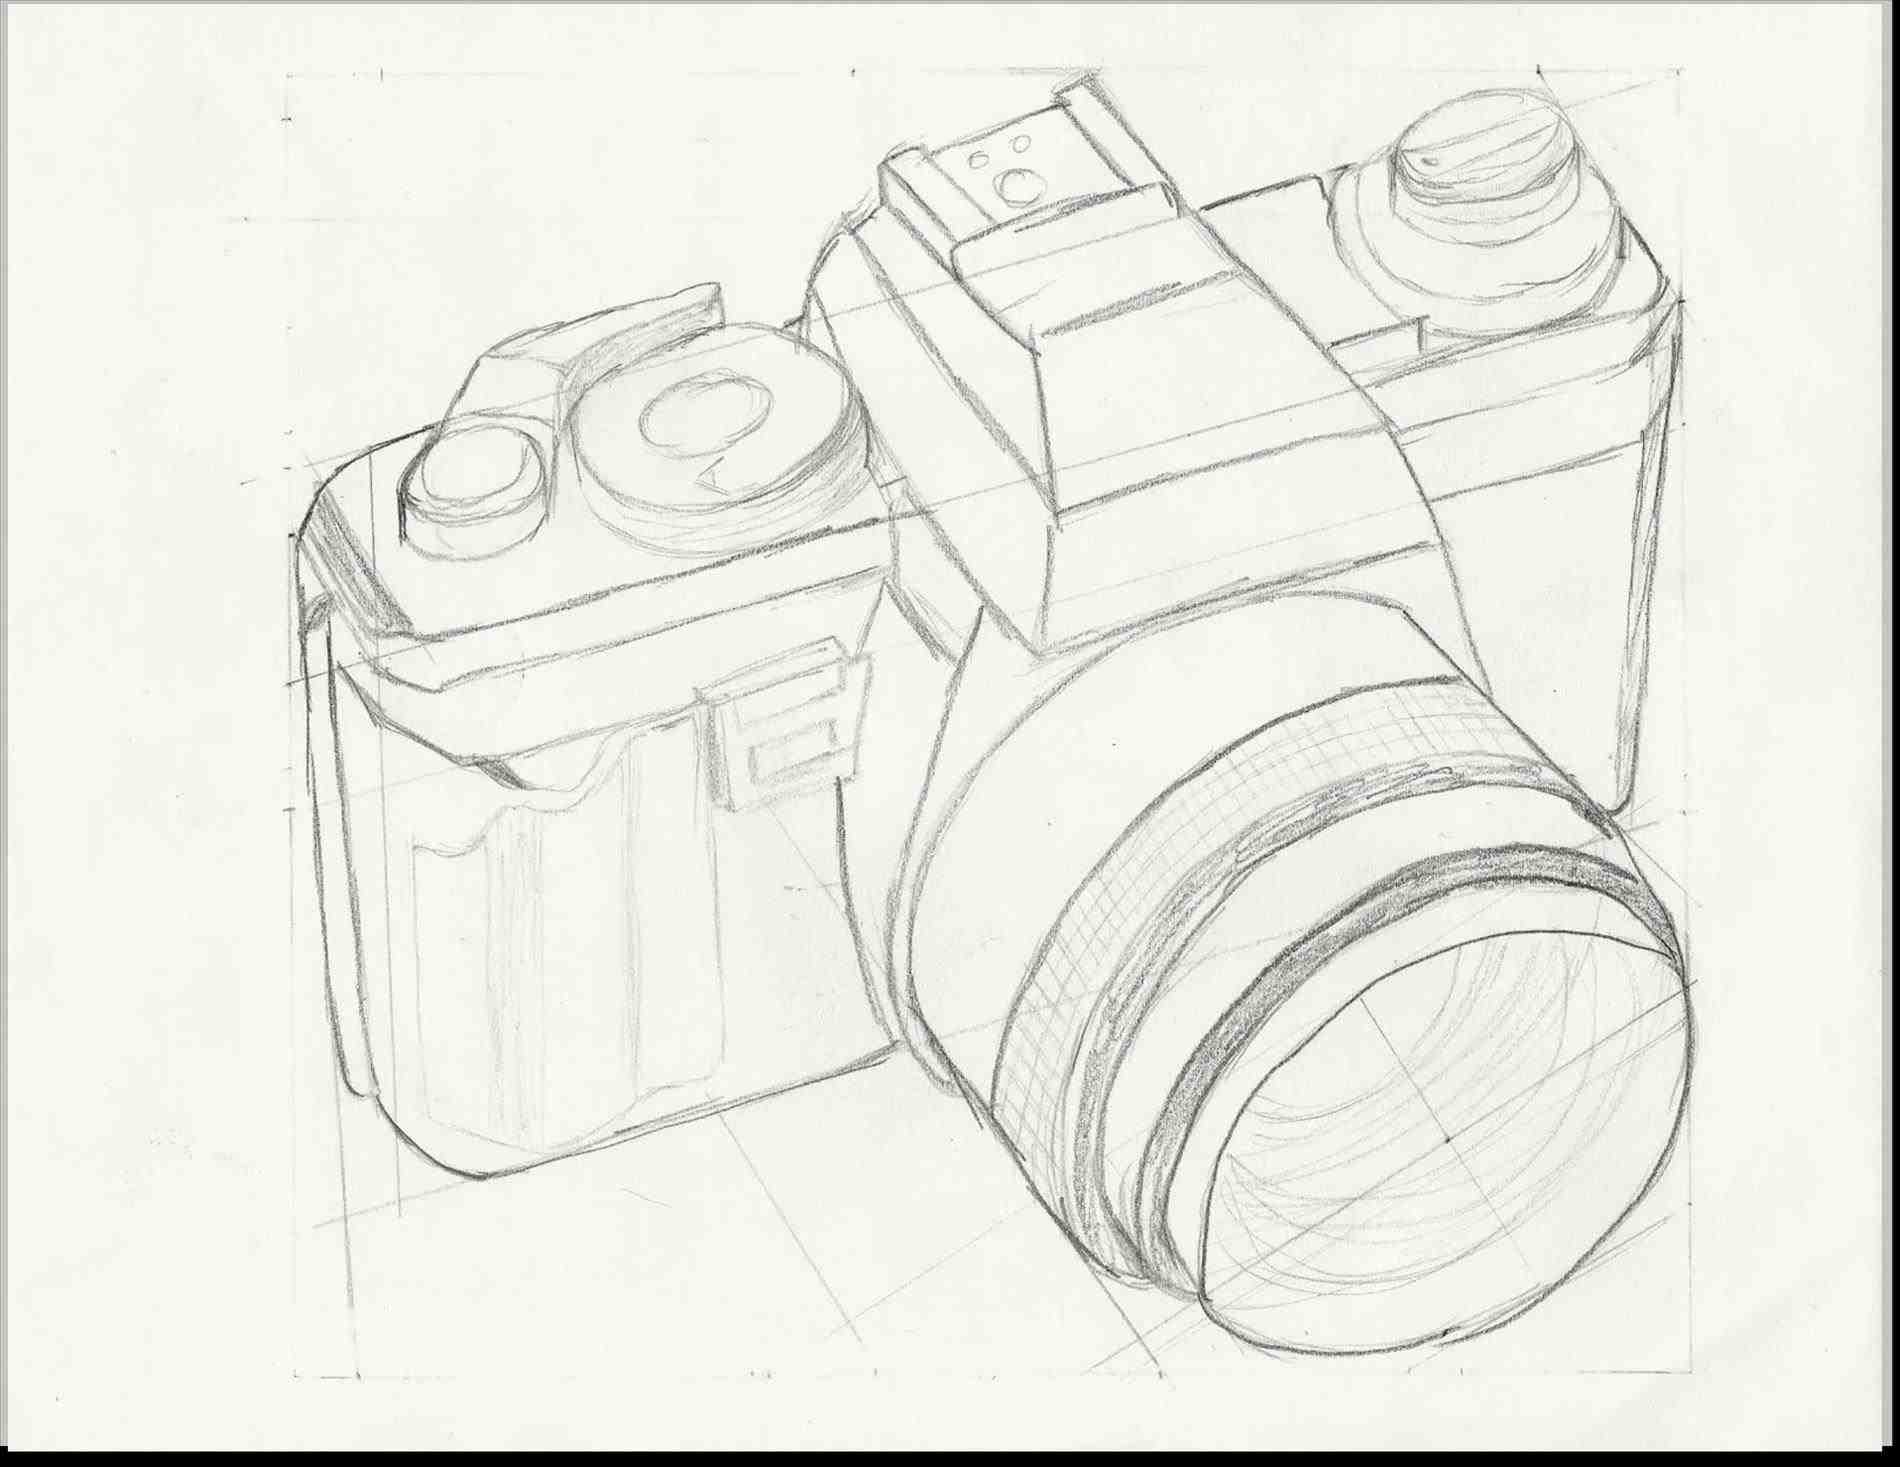 1900x1467 The Images Collection Of Better With A Good Drawing Ideas